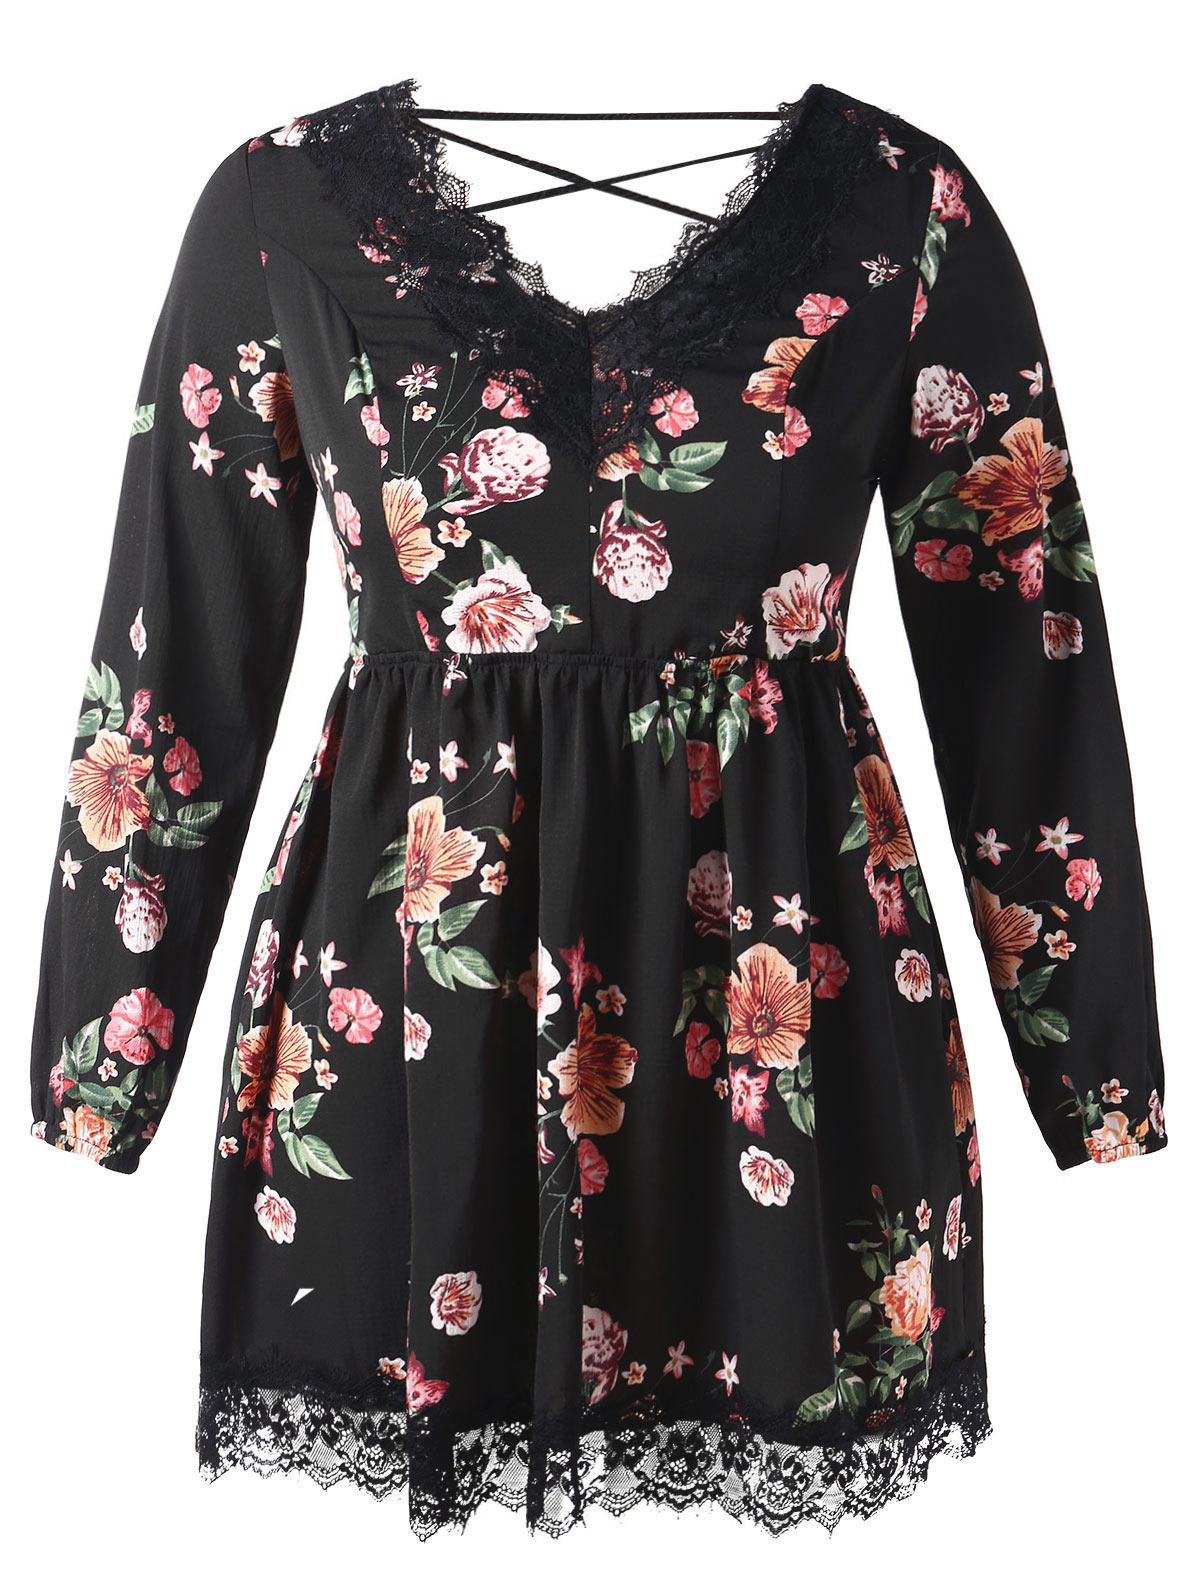 63bd613ecbdd0 US $12.95 52% OFF|Wipalo Plus Size Lace Up Floral Print Mini Dress Casual V  Neck A Line Lace Trim Dress Oversized Women Fall Clothes 5XL Vestidos-in ...